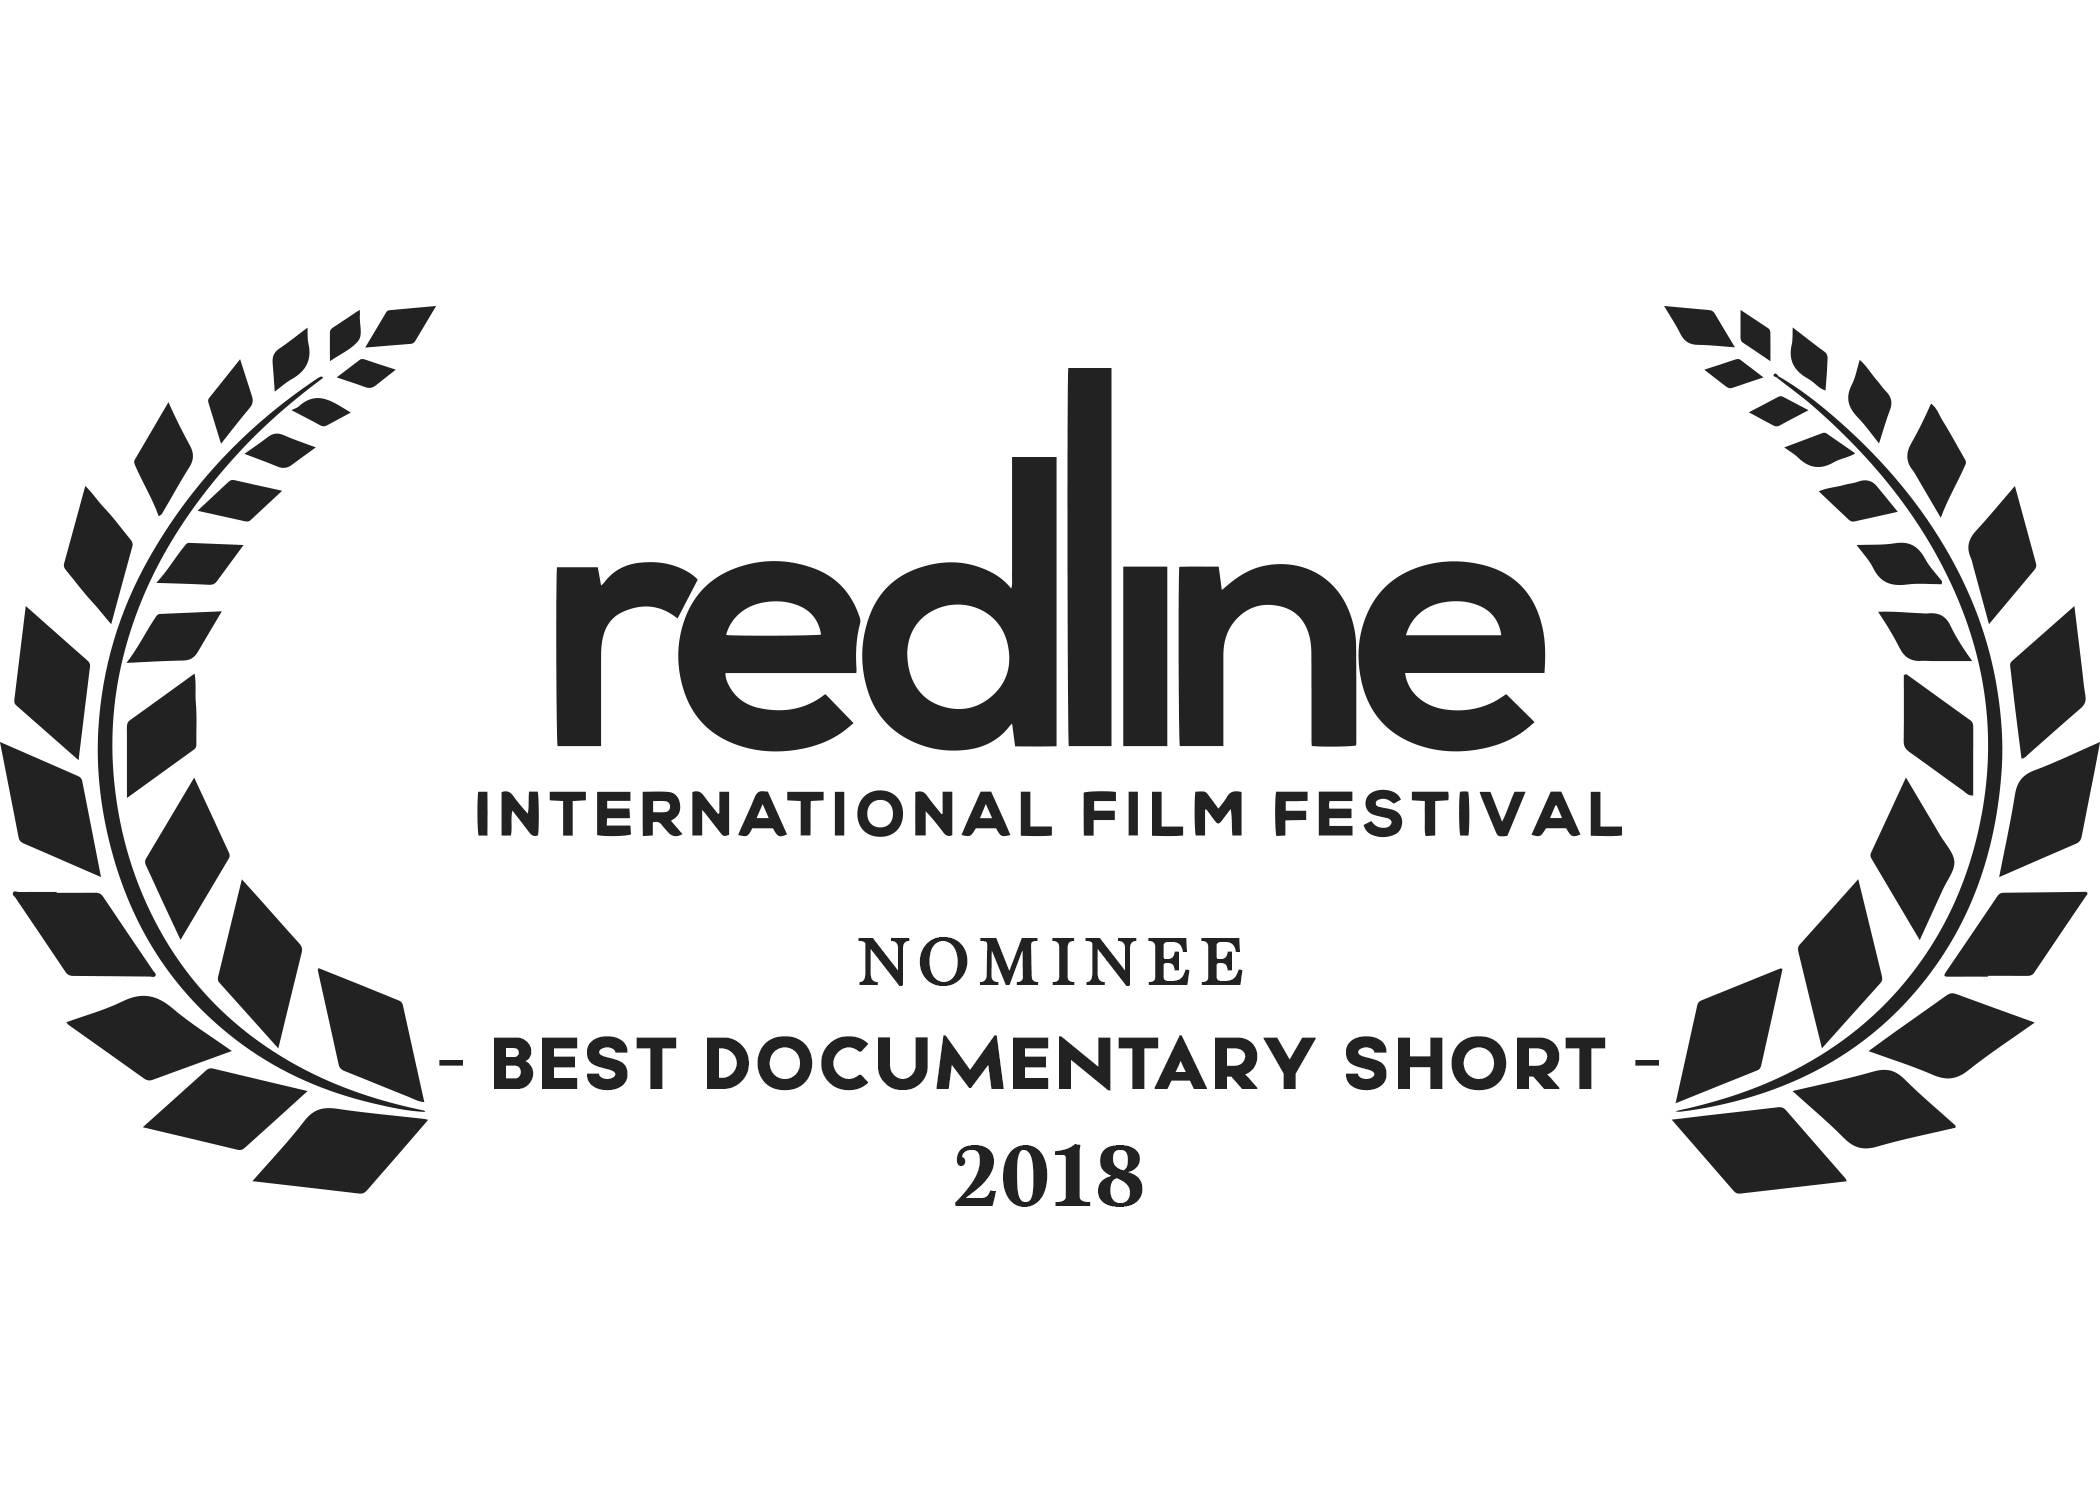 Nominee 2018 Best Documentary Short Laurel (Black on White).jpg